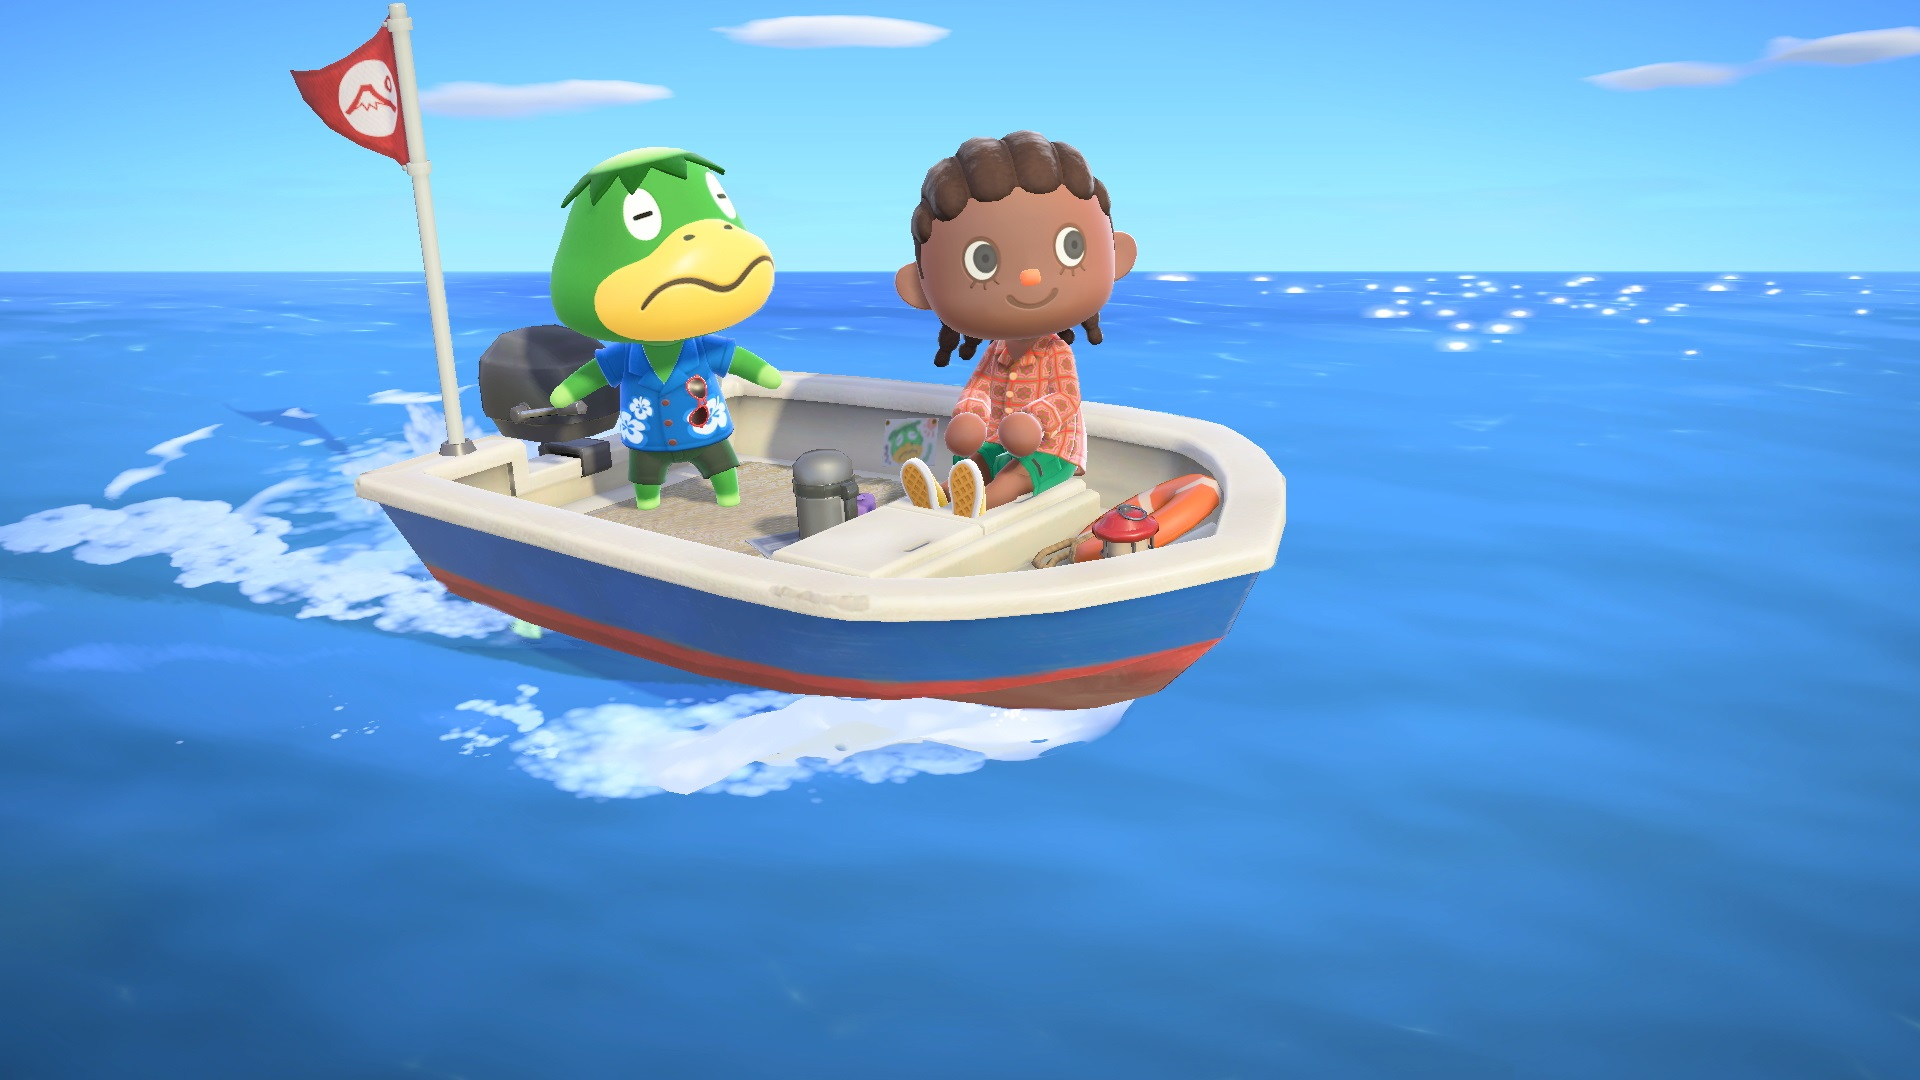 Animal Crossing: New Horizons Kapp'n on his boat with an animal crossing player